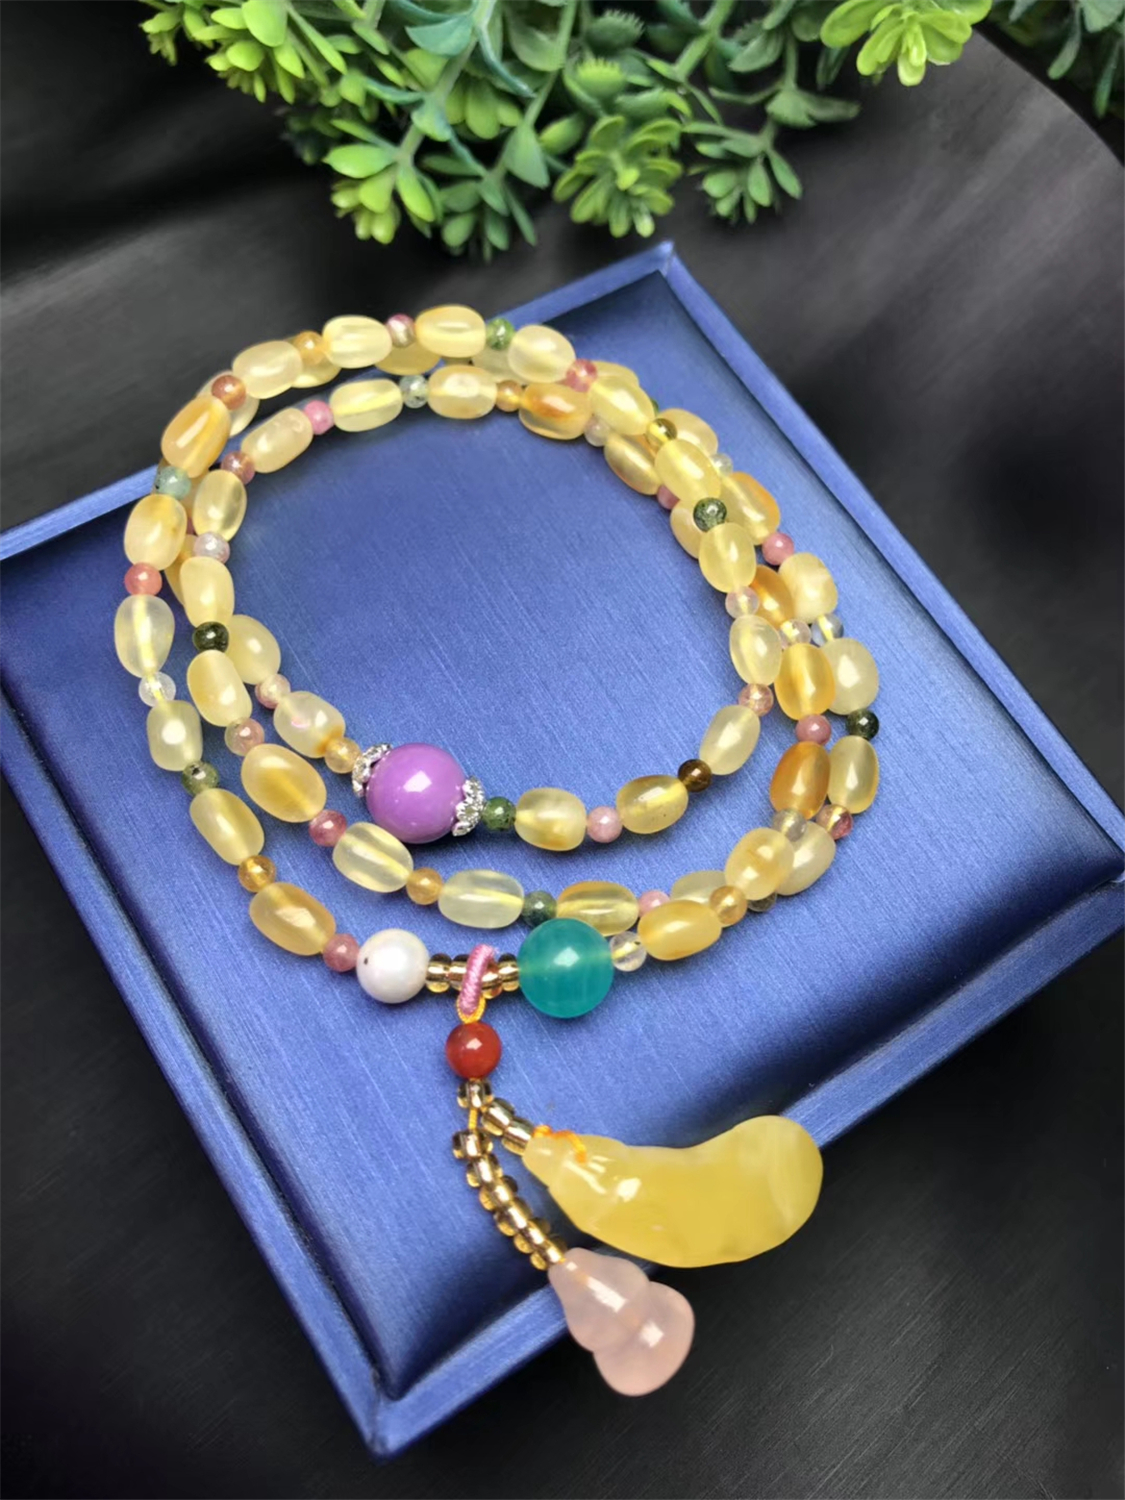 Koraba Fine Jewelry Natural Honey Wax Pendant with Natural Purple Mica Amazon Stone lapis lazuli Grape stone BraceletKoraba Fine Jewelry Natural Honey Wax Pendant with Natural Purple Mica Amazon Stone lapis lazuli Grape stone Bracelet